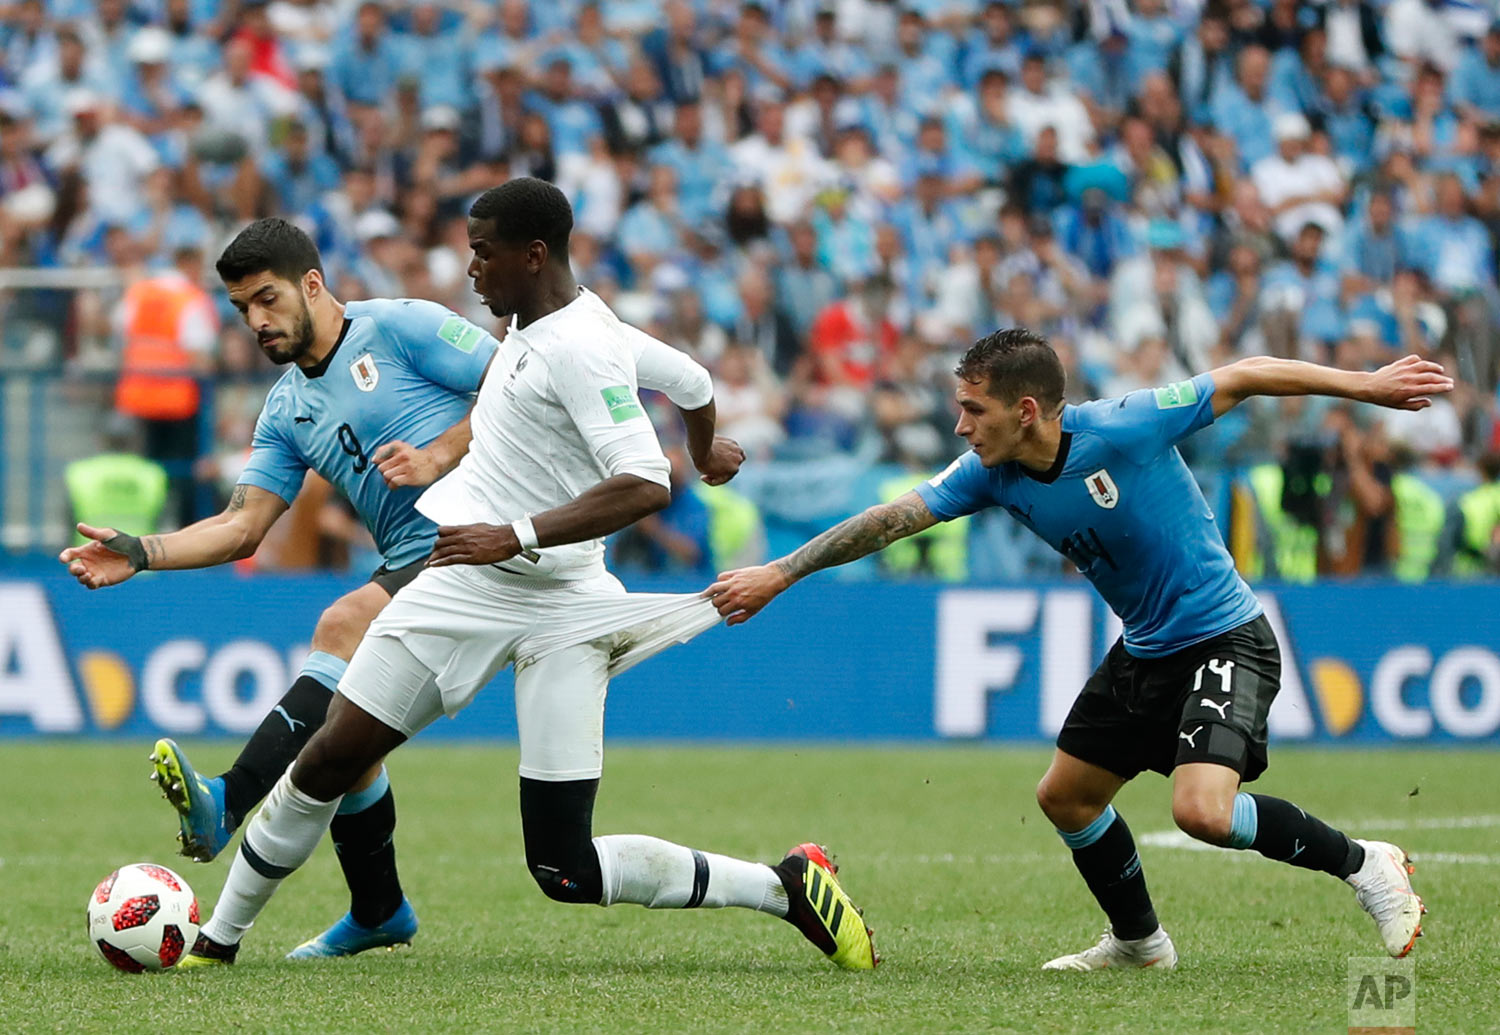 France's Paul Pogba, center, clashes with Uruguay's Luis Suarez, left, and Lucas Torreira during the quarterfinal match between Uruguay and France at the 2018 soccer World Cup in the Nizhny Novgorod Stadium, in Nizhny Novgorod, Russia, Friday, July 6, 2018. (AP Photo/Natacha Pisarenko)